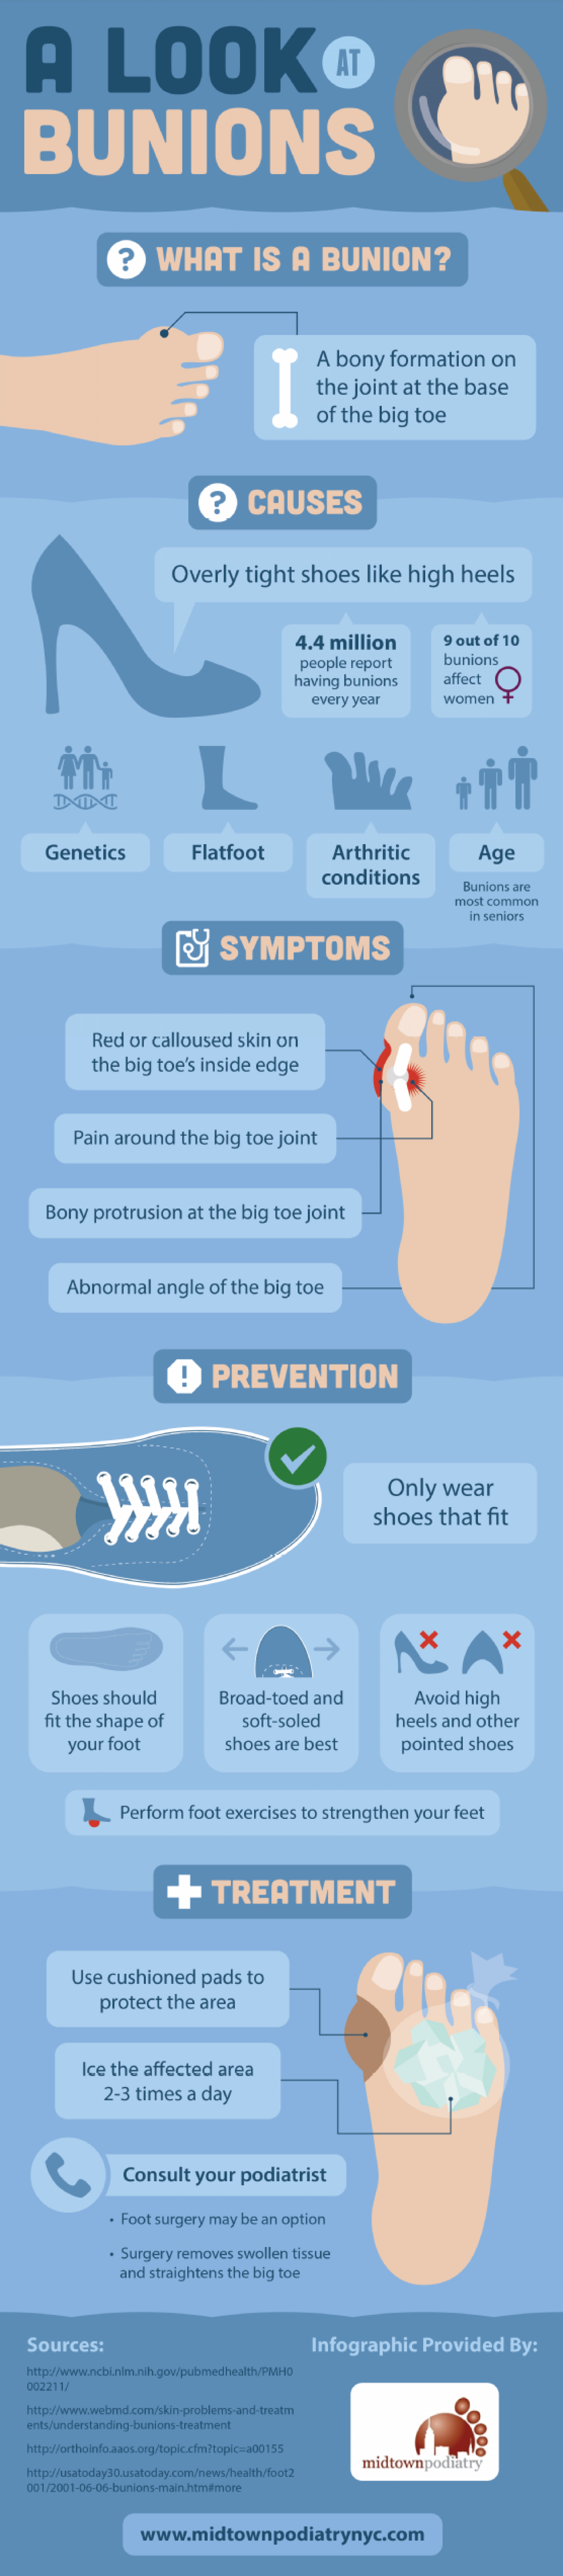 A Look at Bunions Infographic